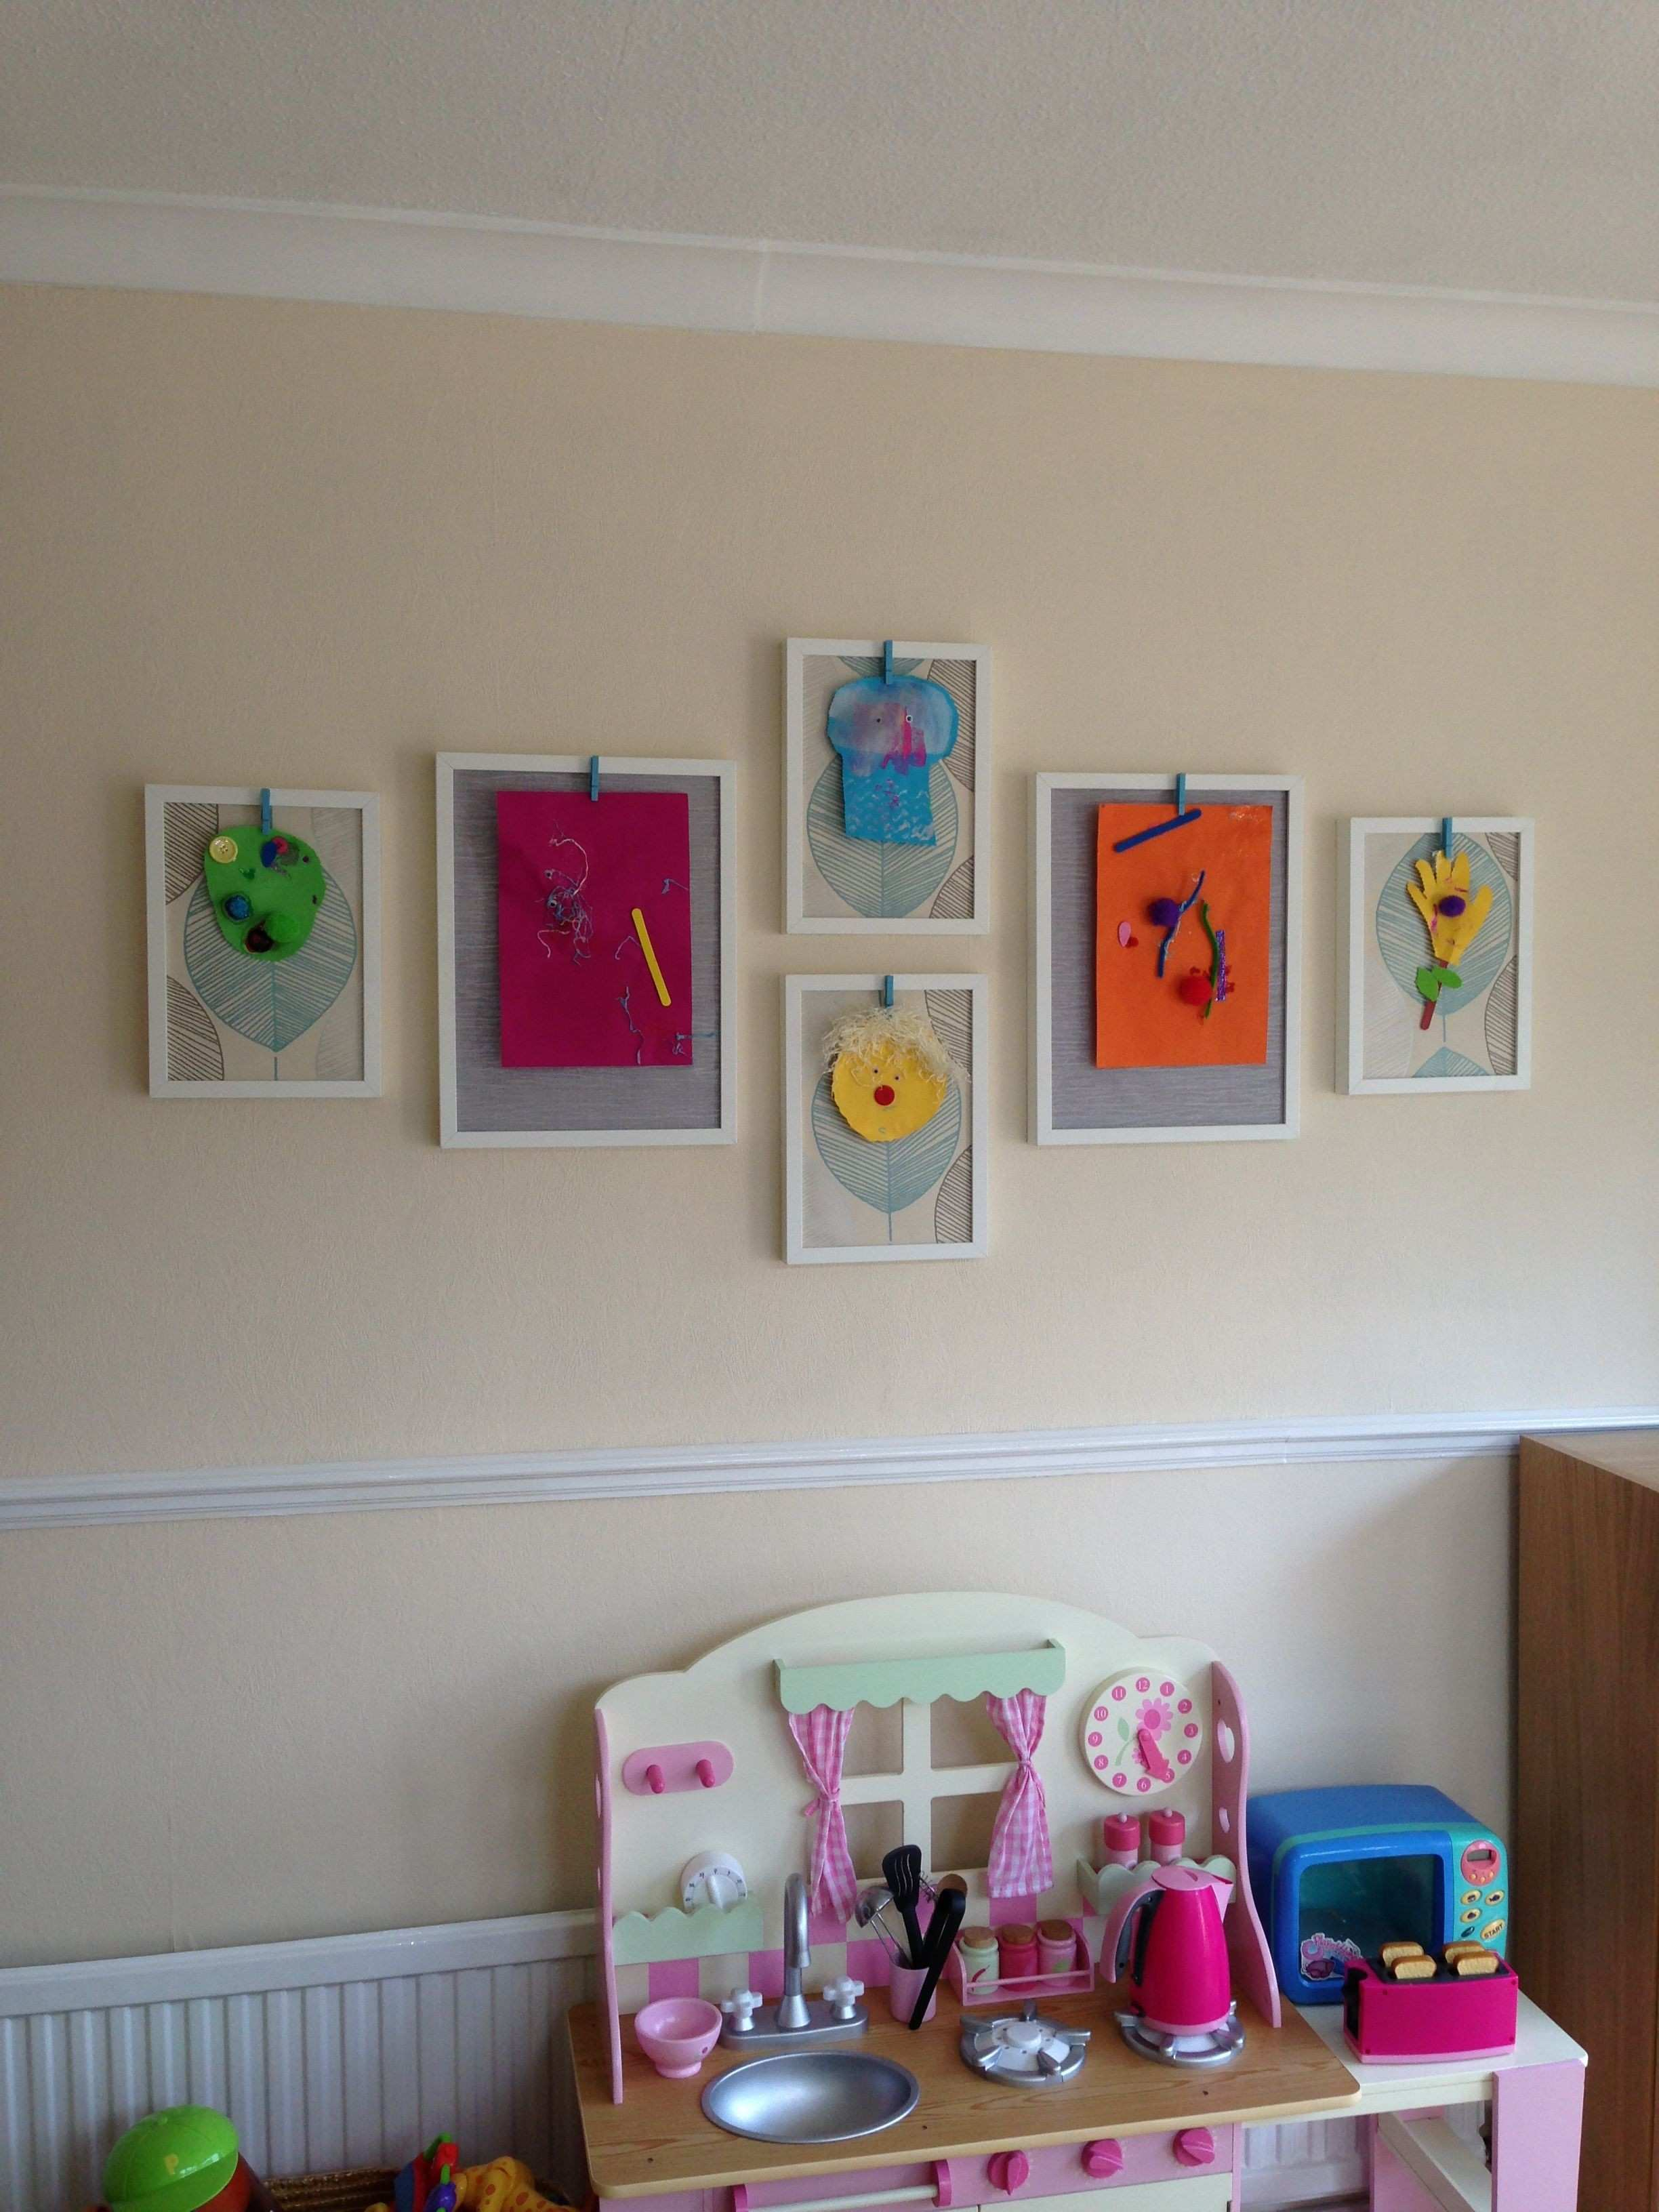 Kids art wall display Made with ikea frames wallpaper samples and